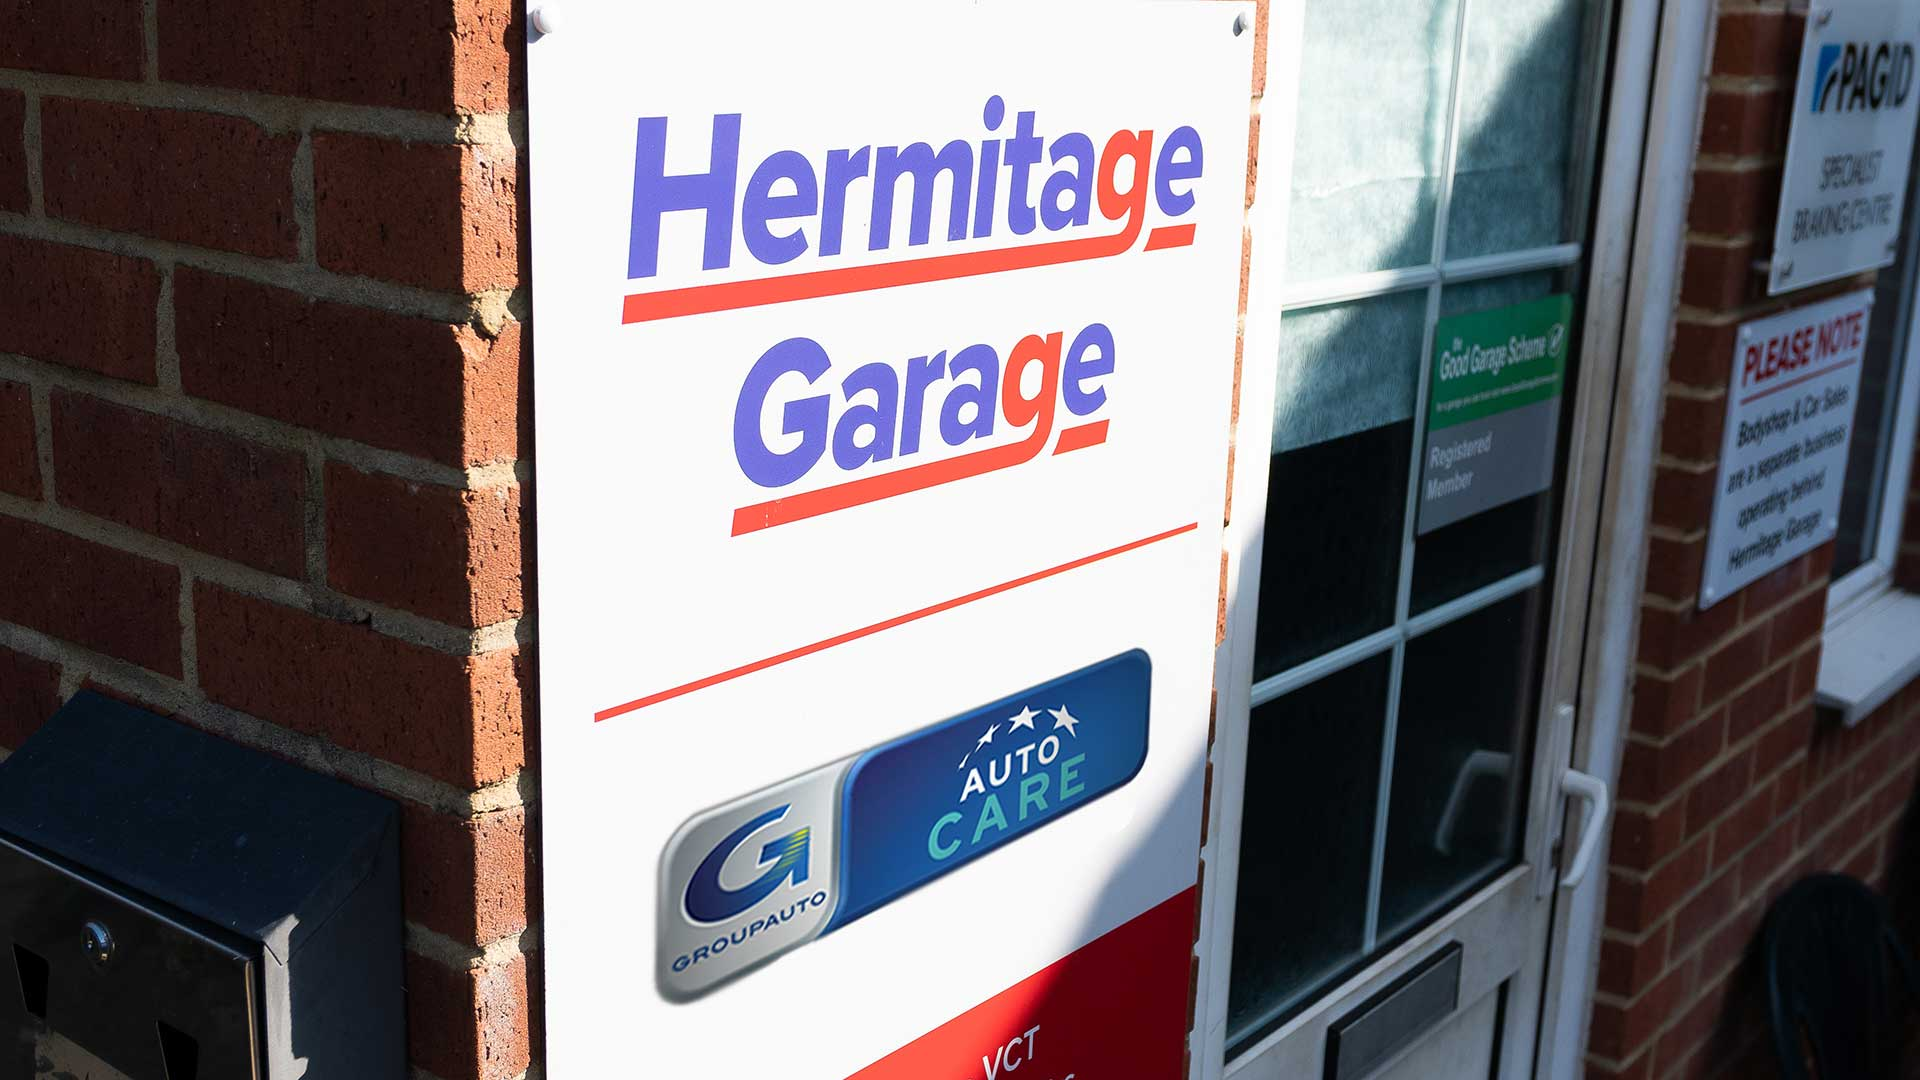 Photo of the Hermitage Garage shop sign